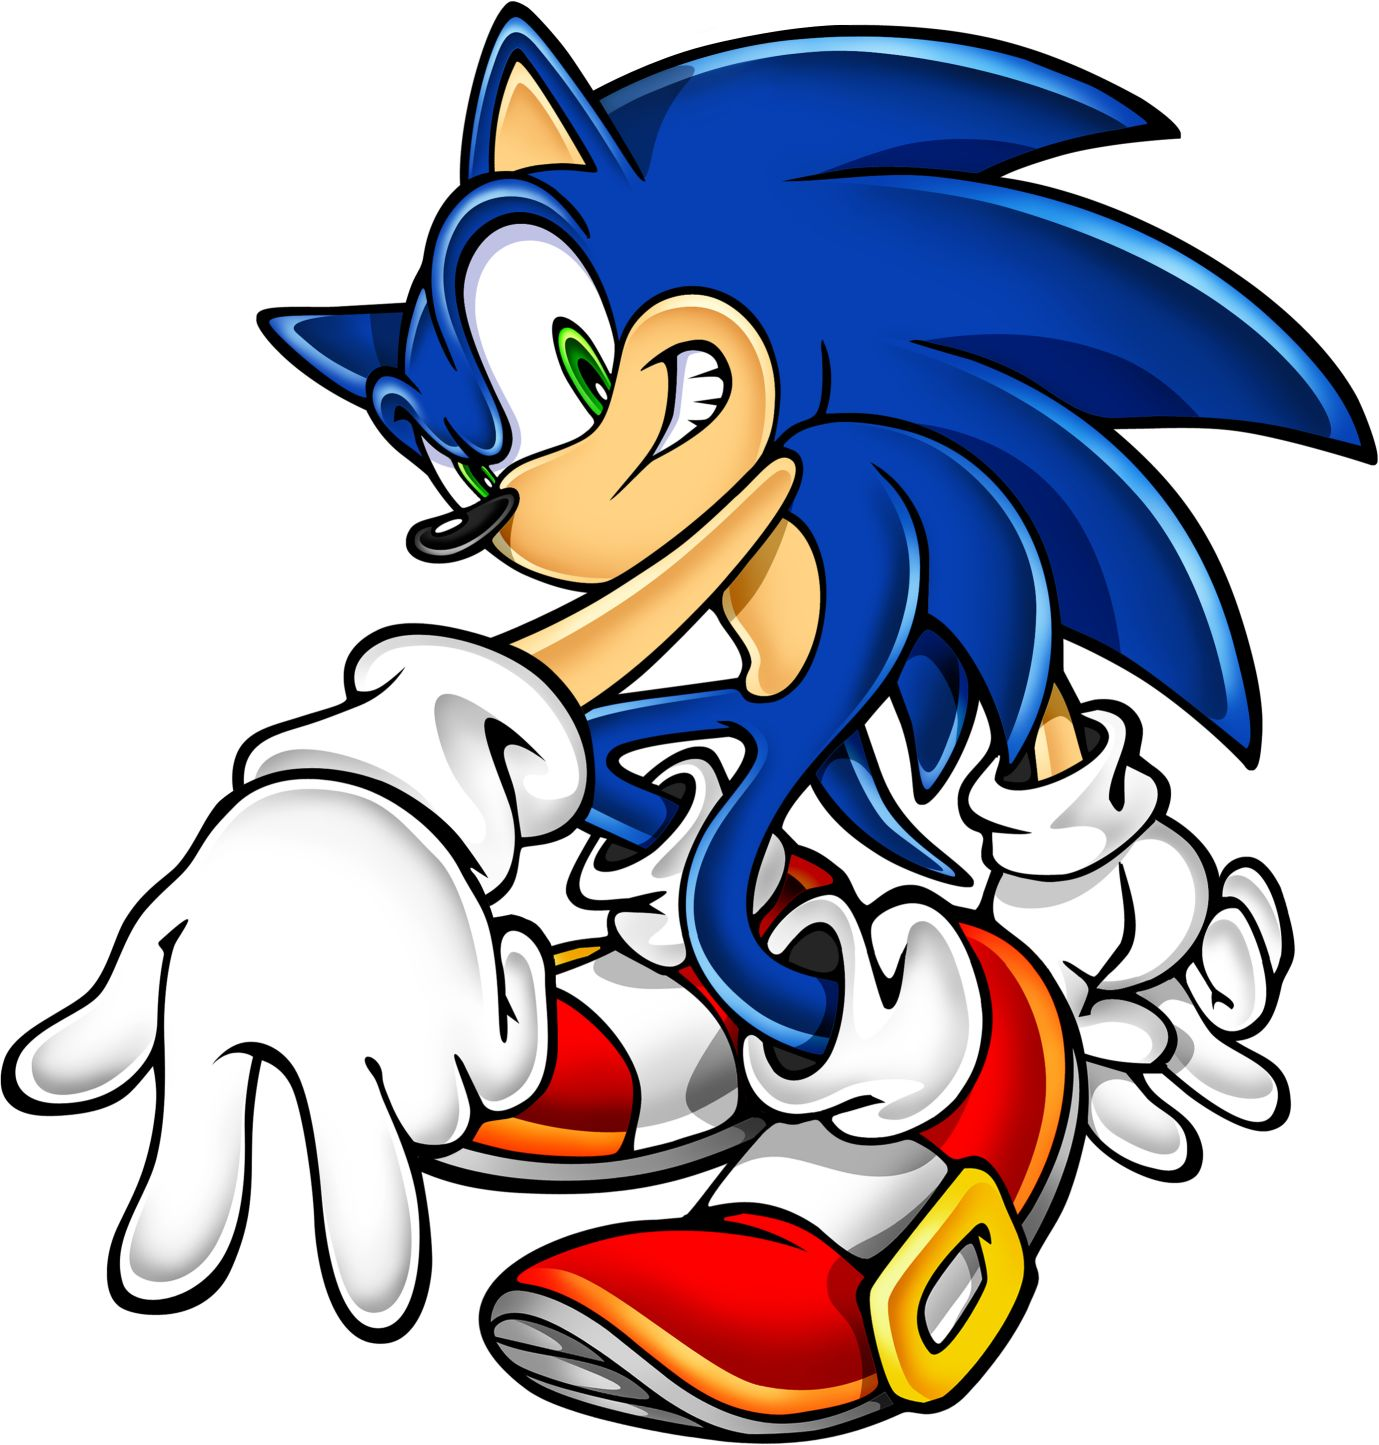 Remastered Sonic The Hedgehog 2 And Sega S Winter Ios